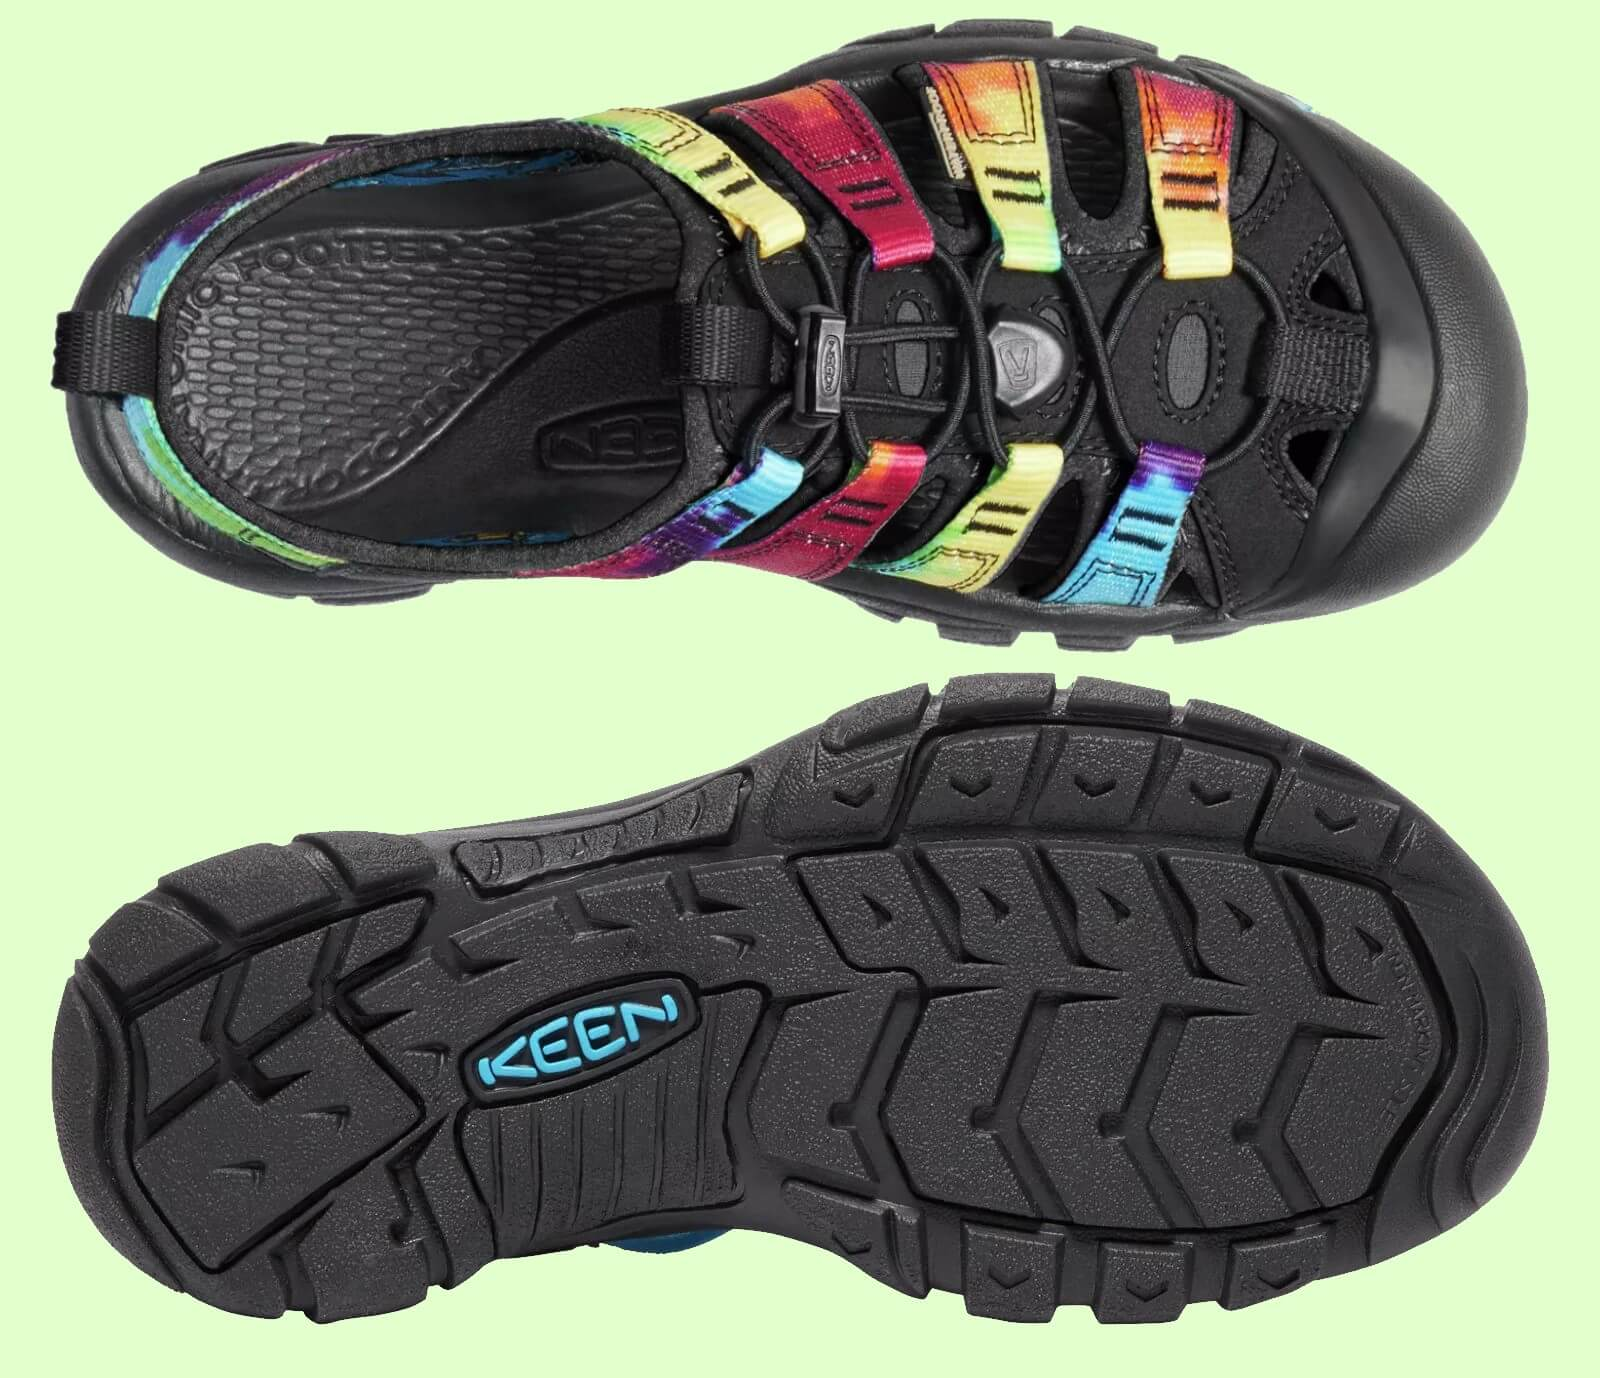 Details of the vibram sole and the synthetic upper on the KEEN Newport H2 Sandal